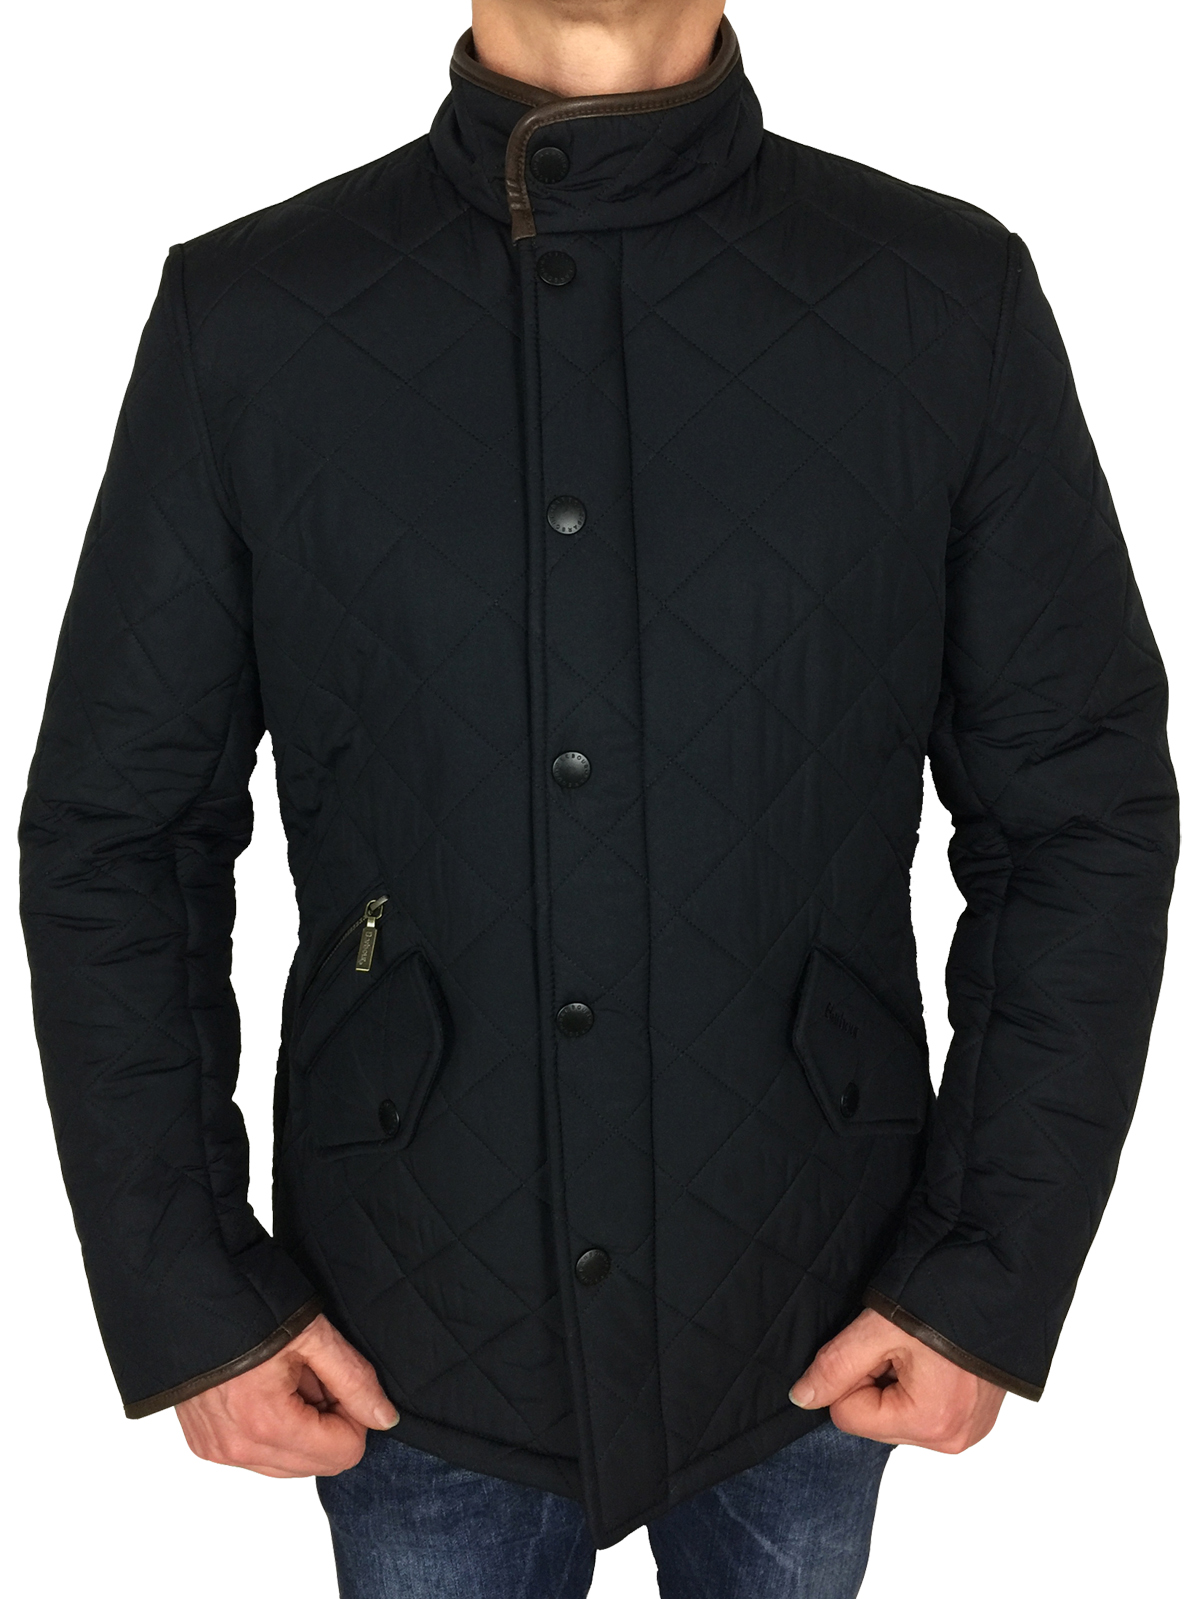 jacket helm image jackets fashion barbour and uk quilted coats from cho quilt lifestyle mens